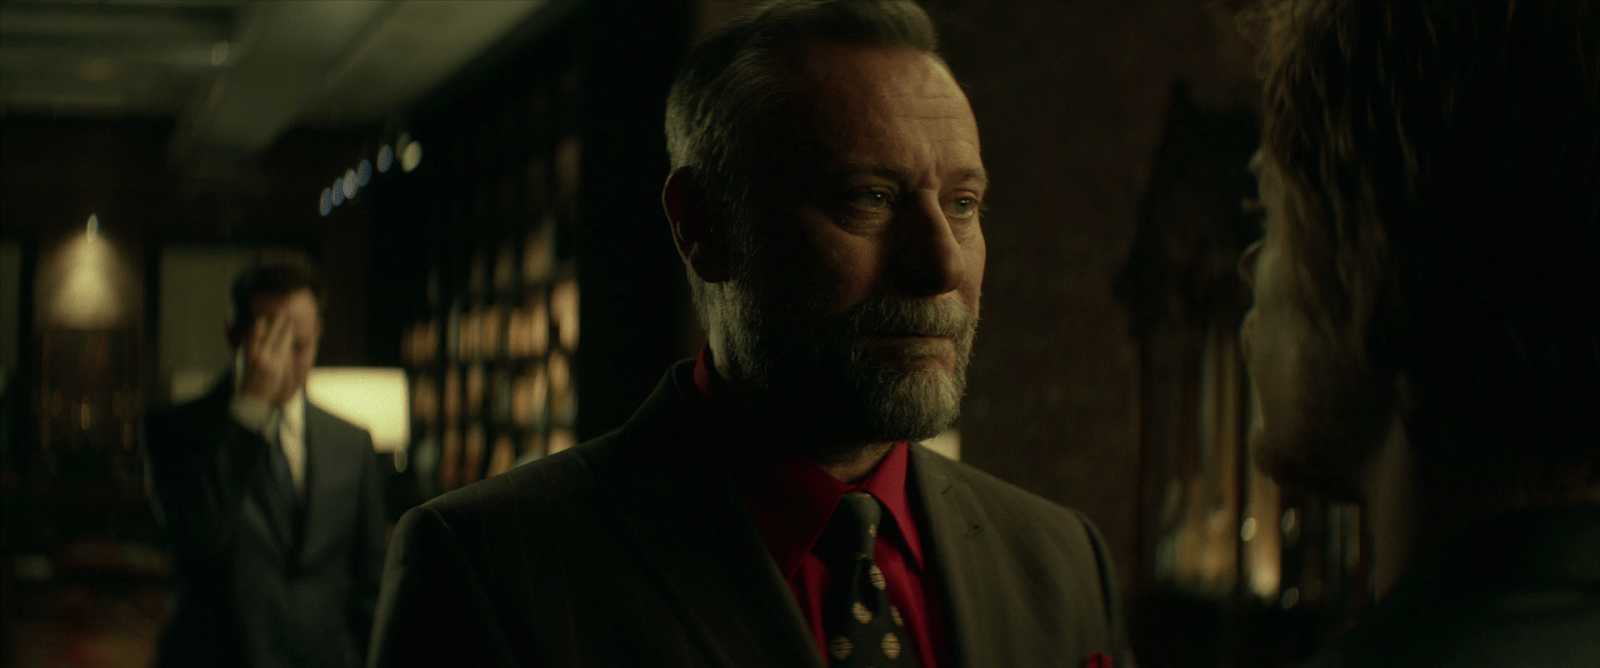 """Michael Nyquist plays the """"villain"""" in John Wick (2014) and gets to say Baba Yaga about a dozen times"""